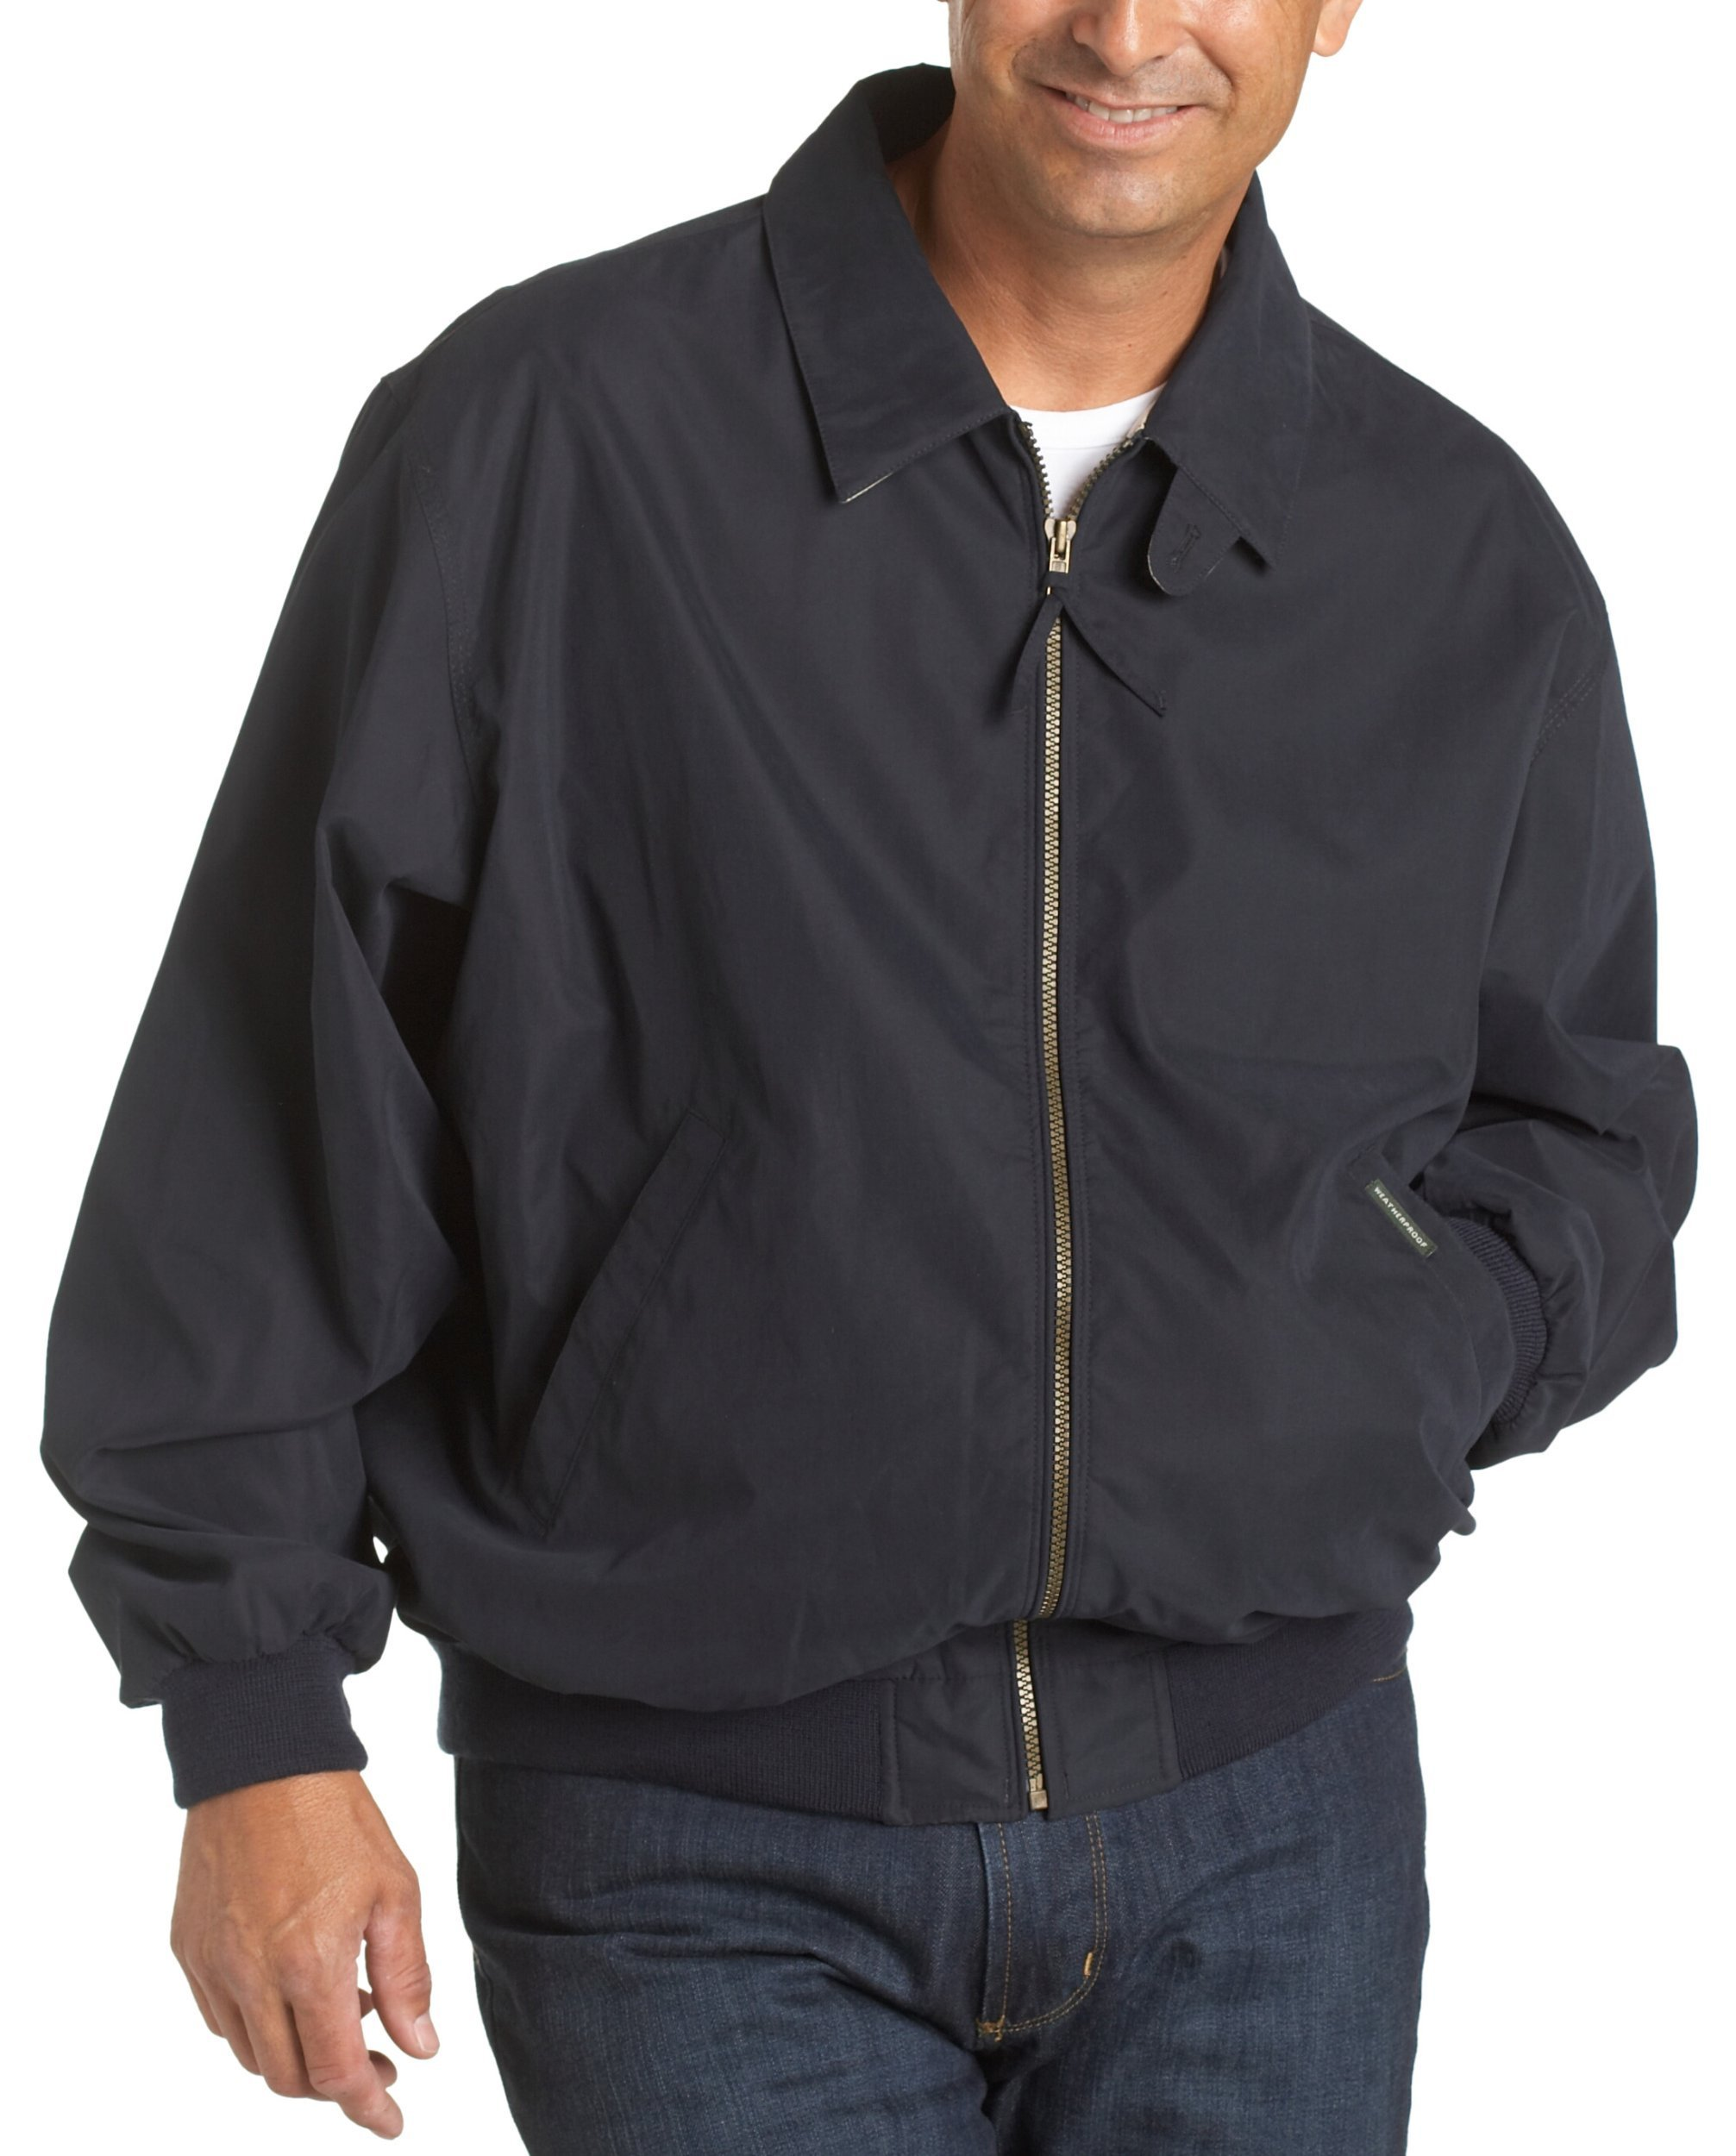 Weatherproof Men's Microfiber Classic Jacket, Navy, Medium by Weatherproof